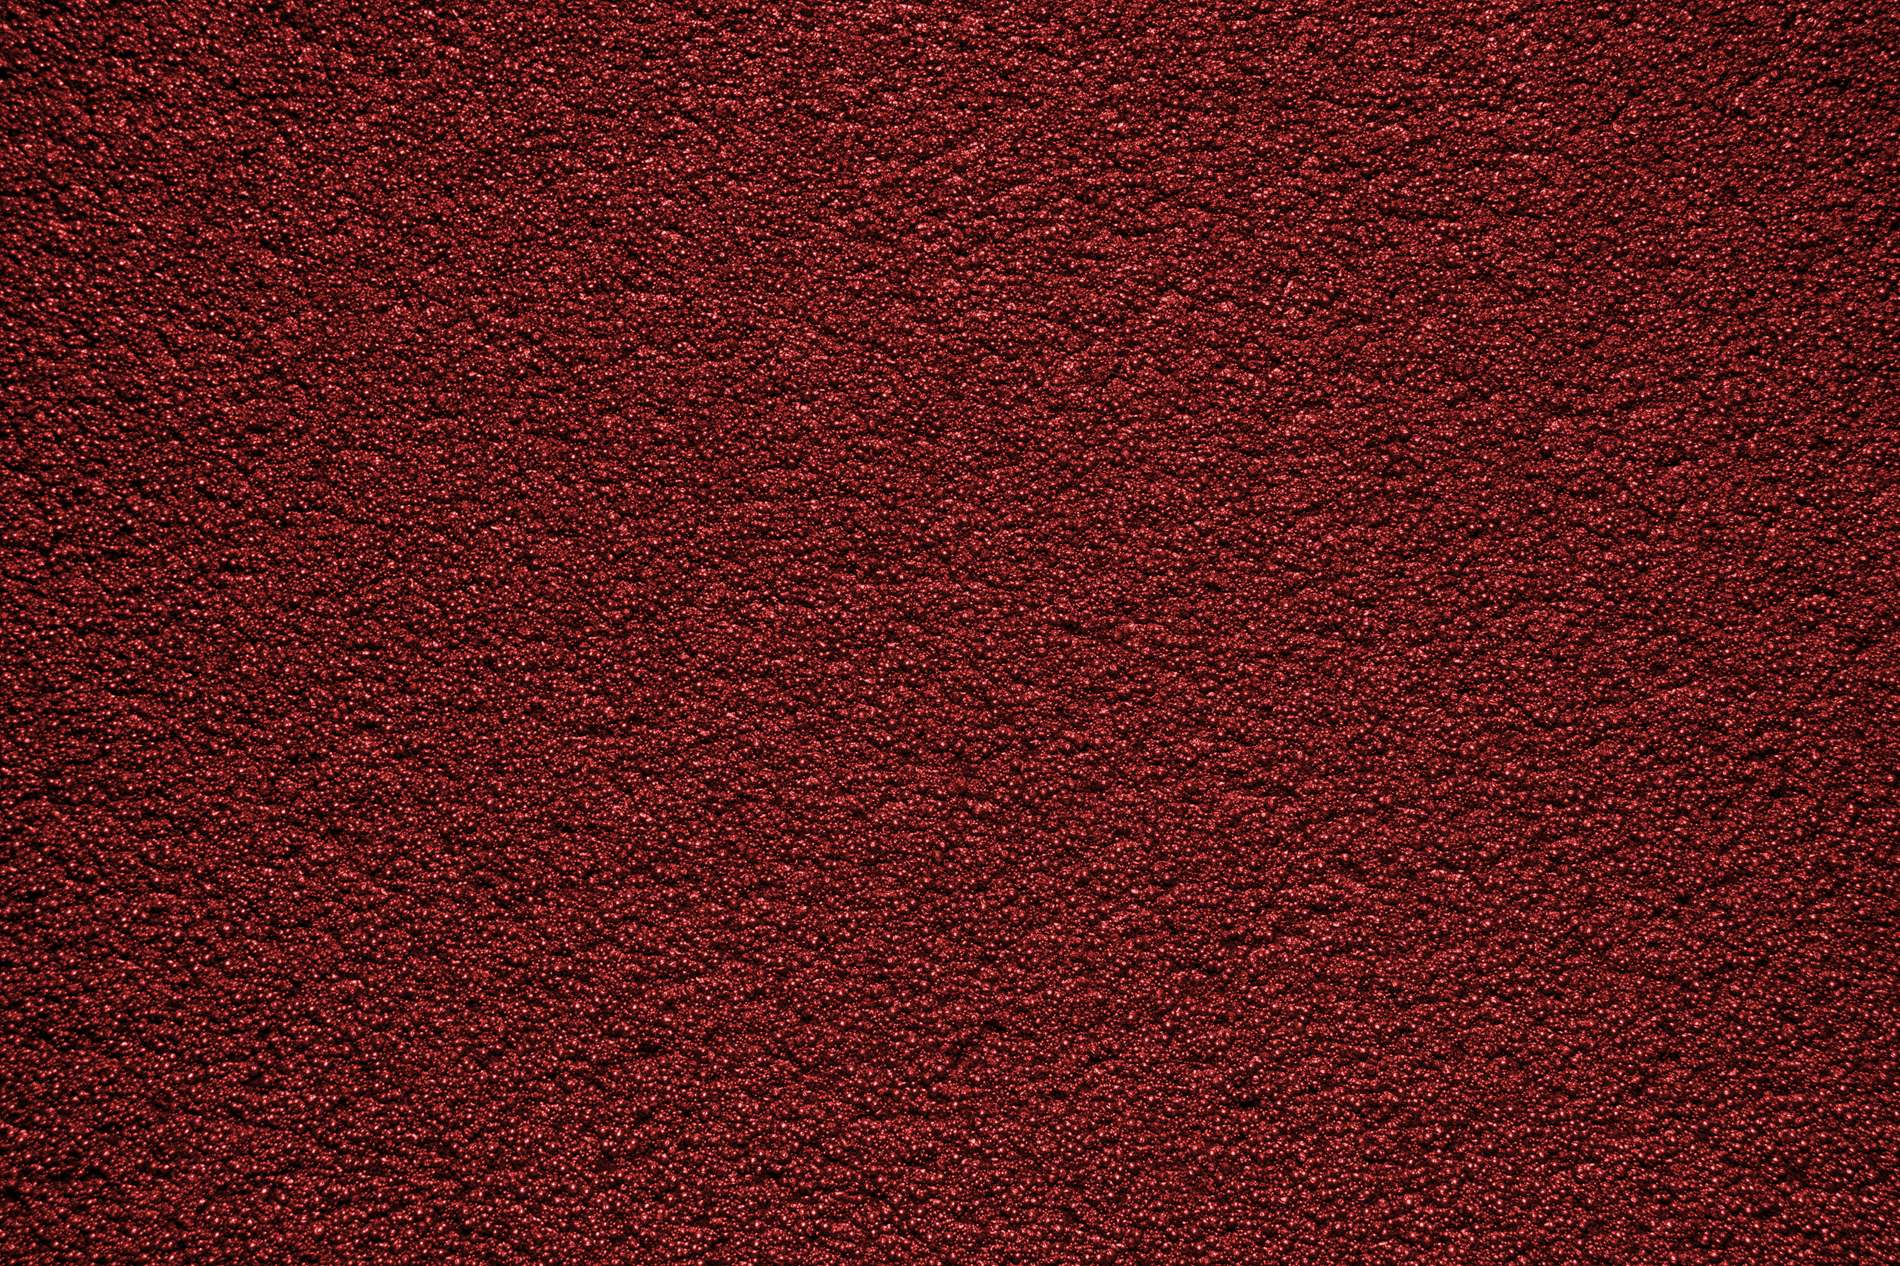 Clean Red Wall Texture Backround